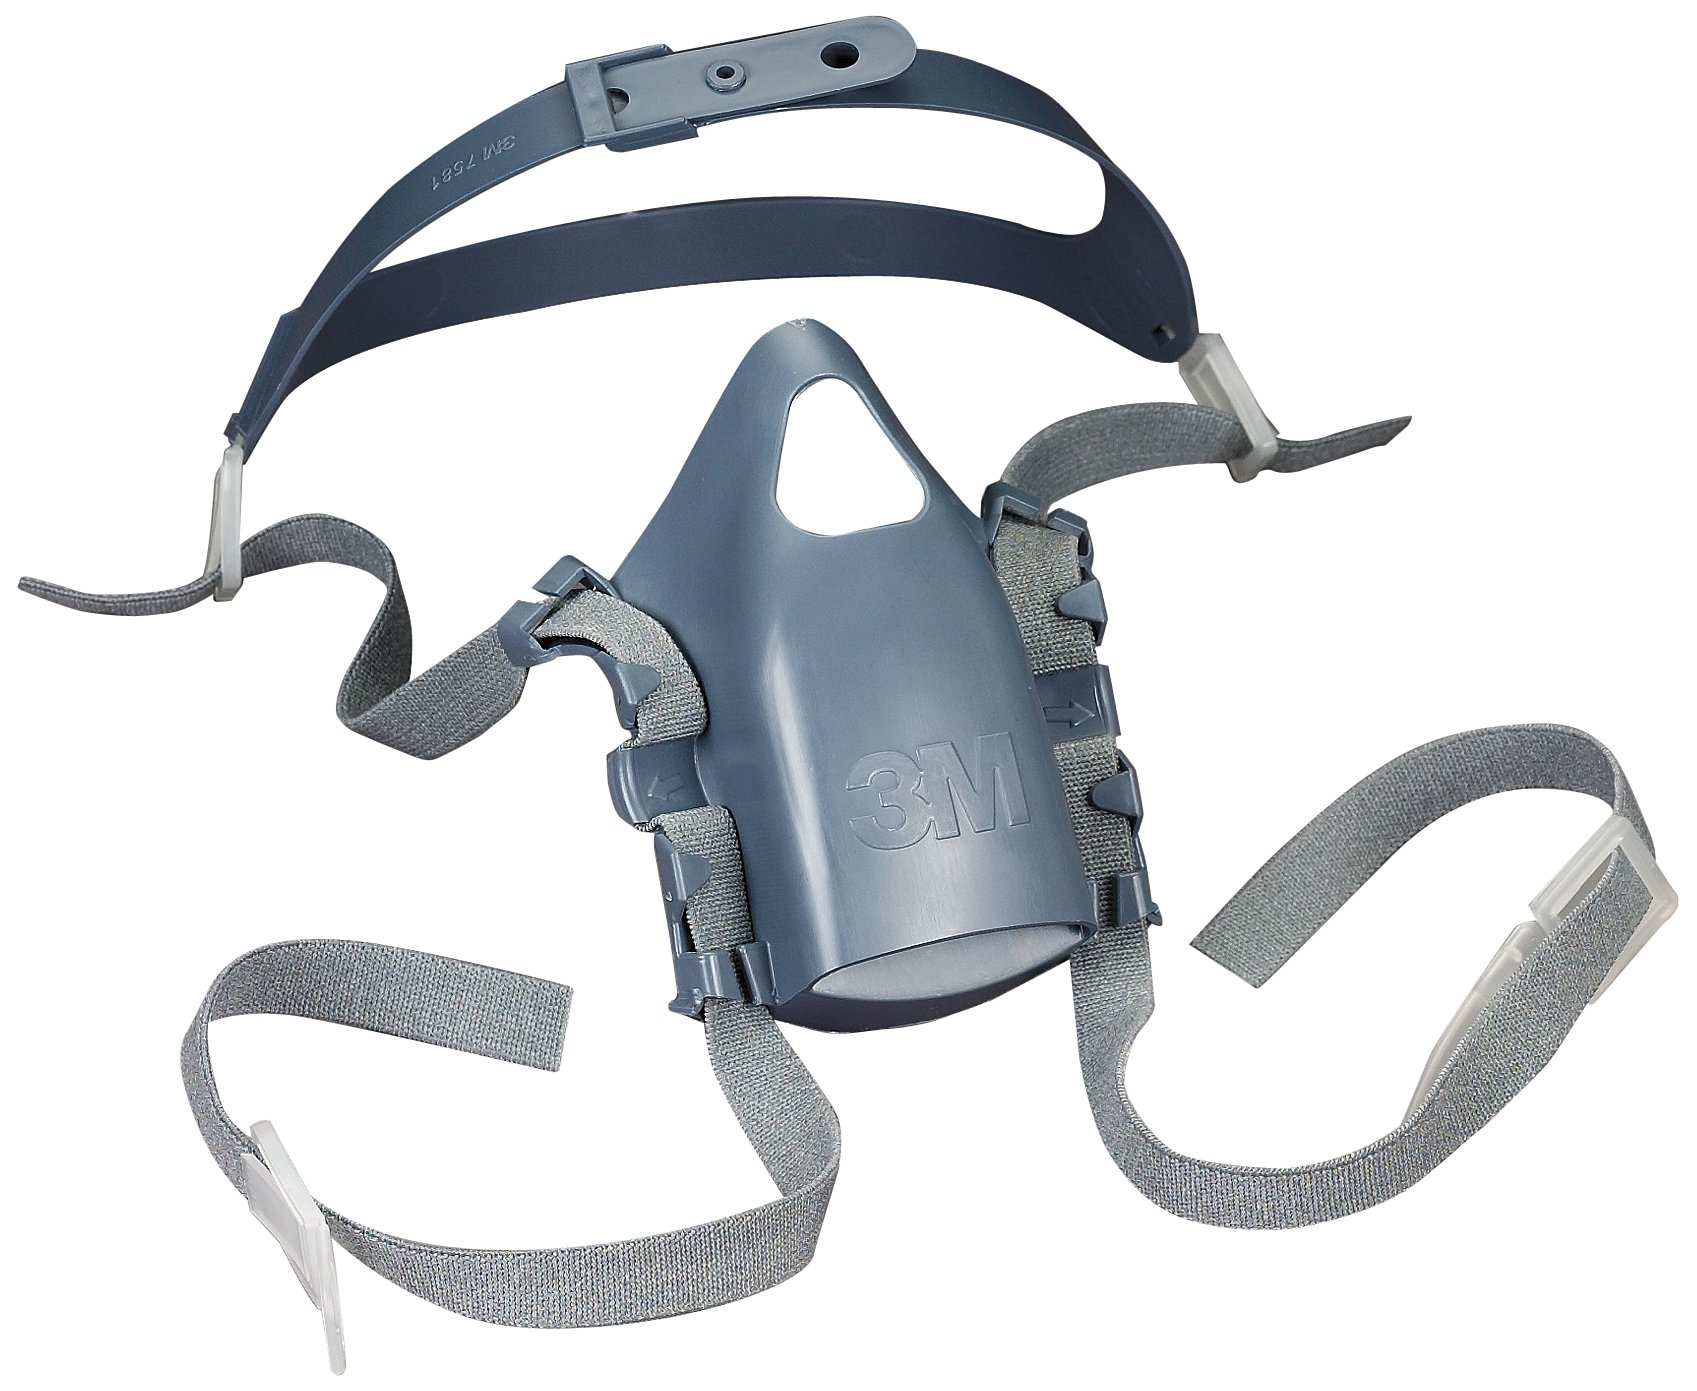 3M Head Harness Assembly 7581, Respiratory Protection System Component  (Pack of 5)